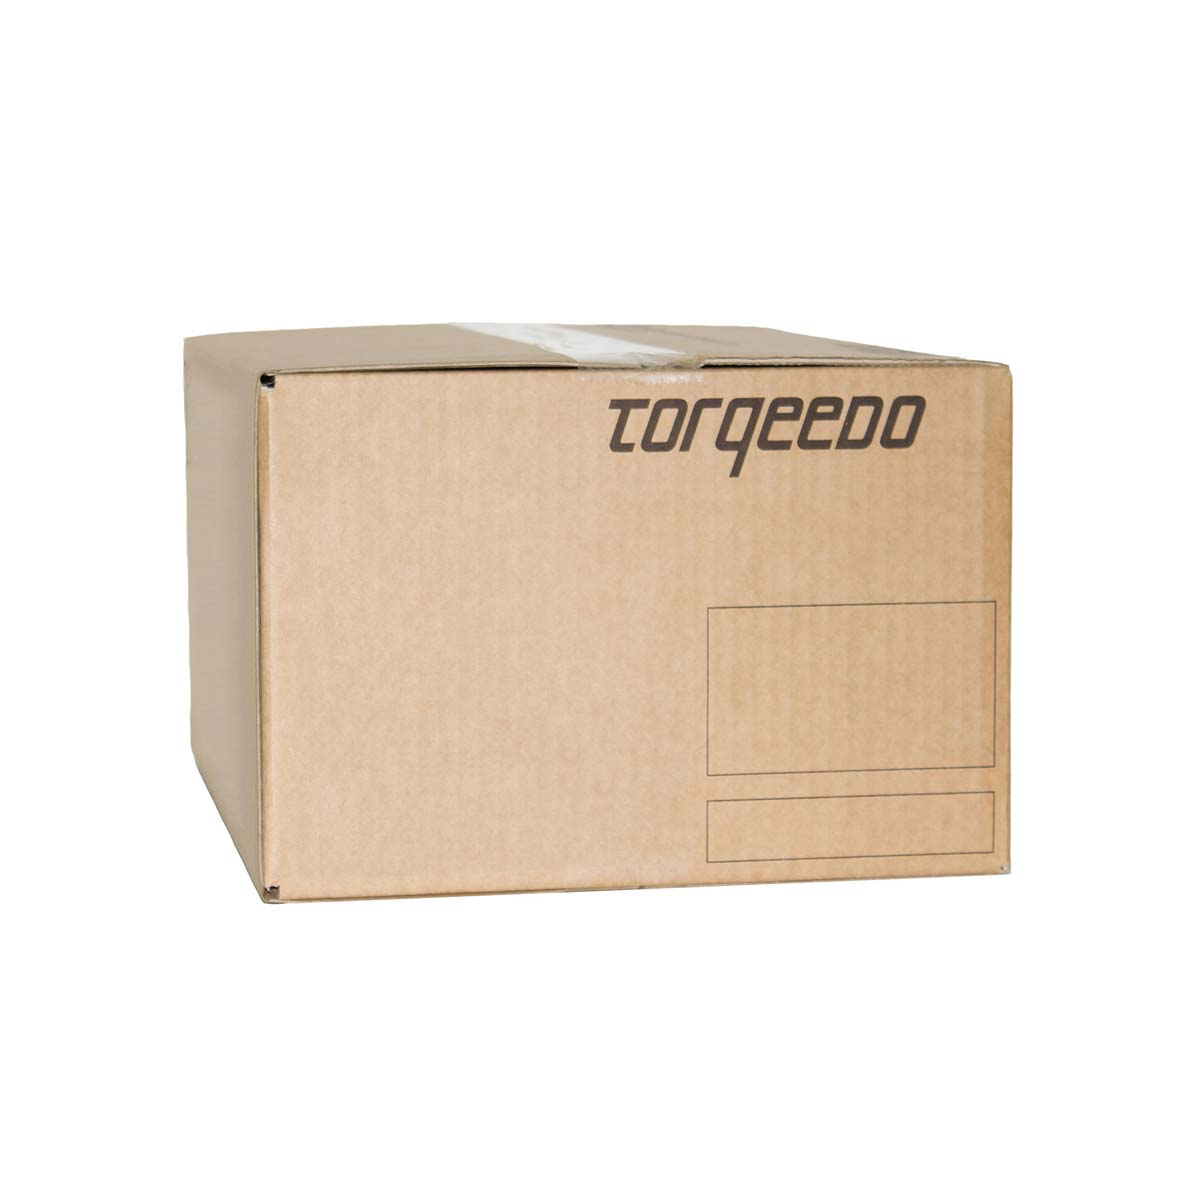 Torqeedo Packaging Cruise TS compl.